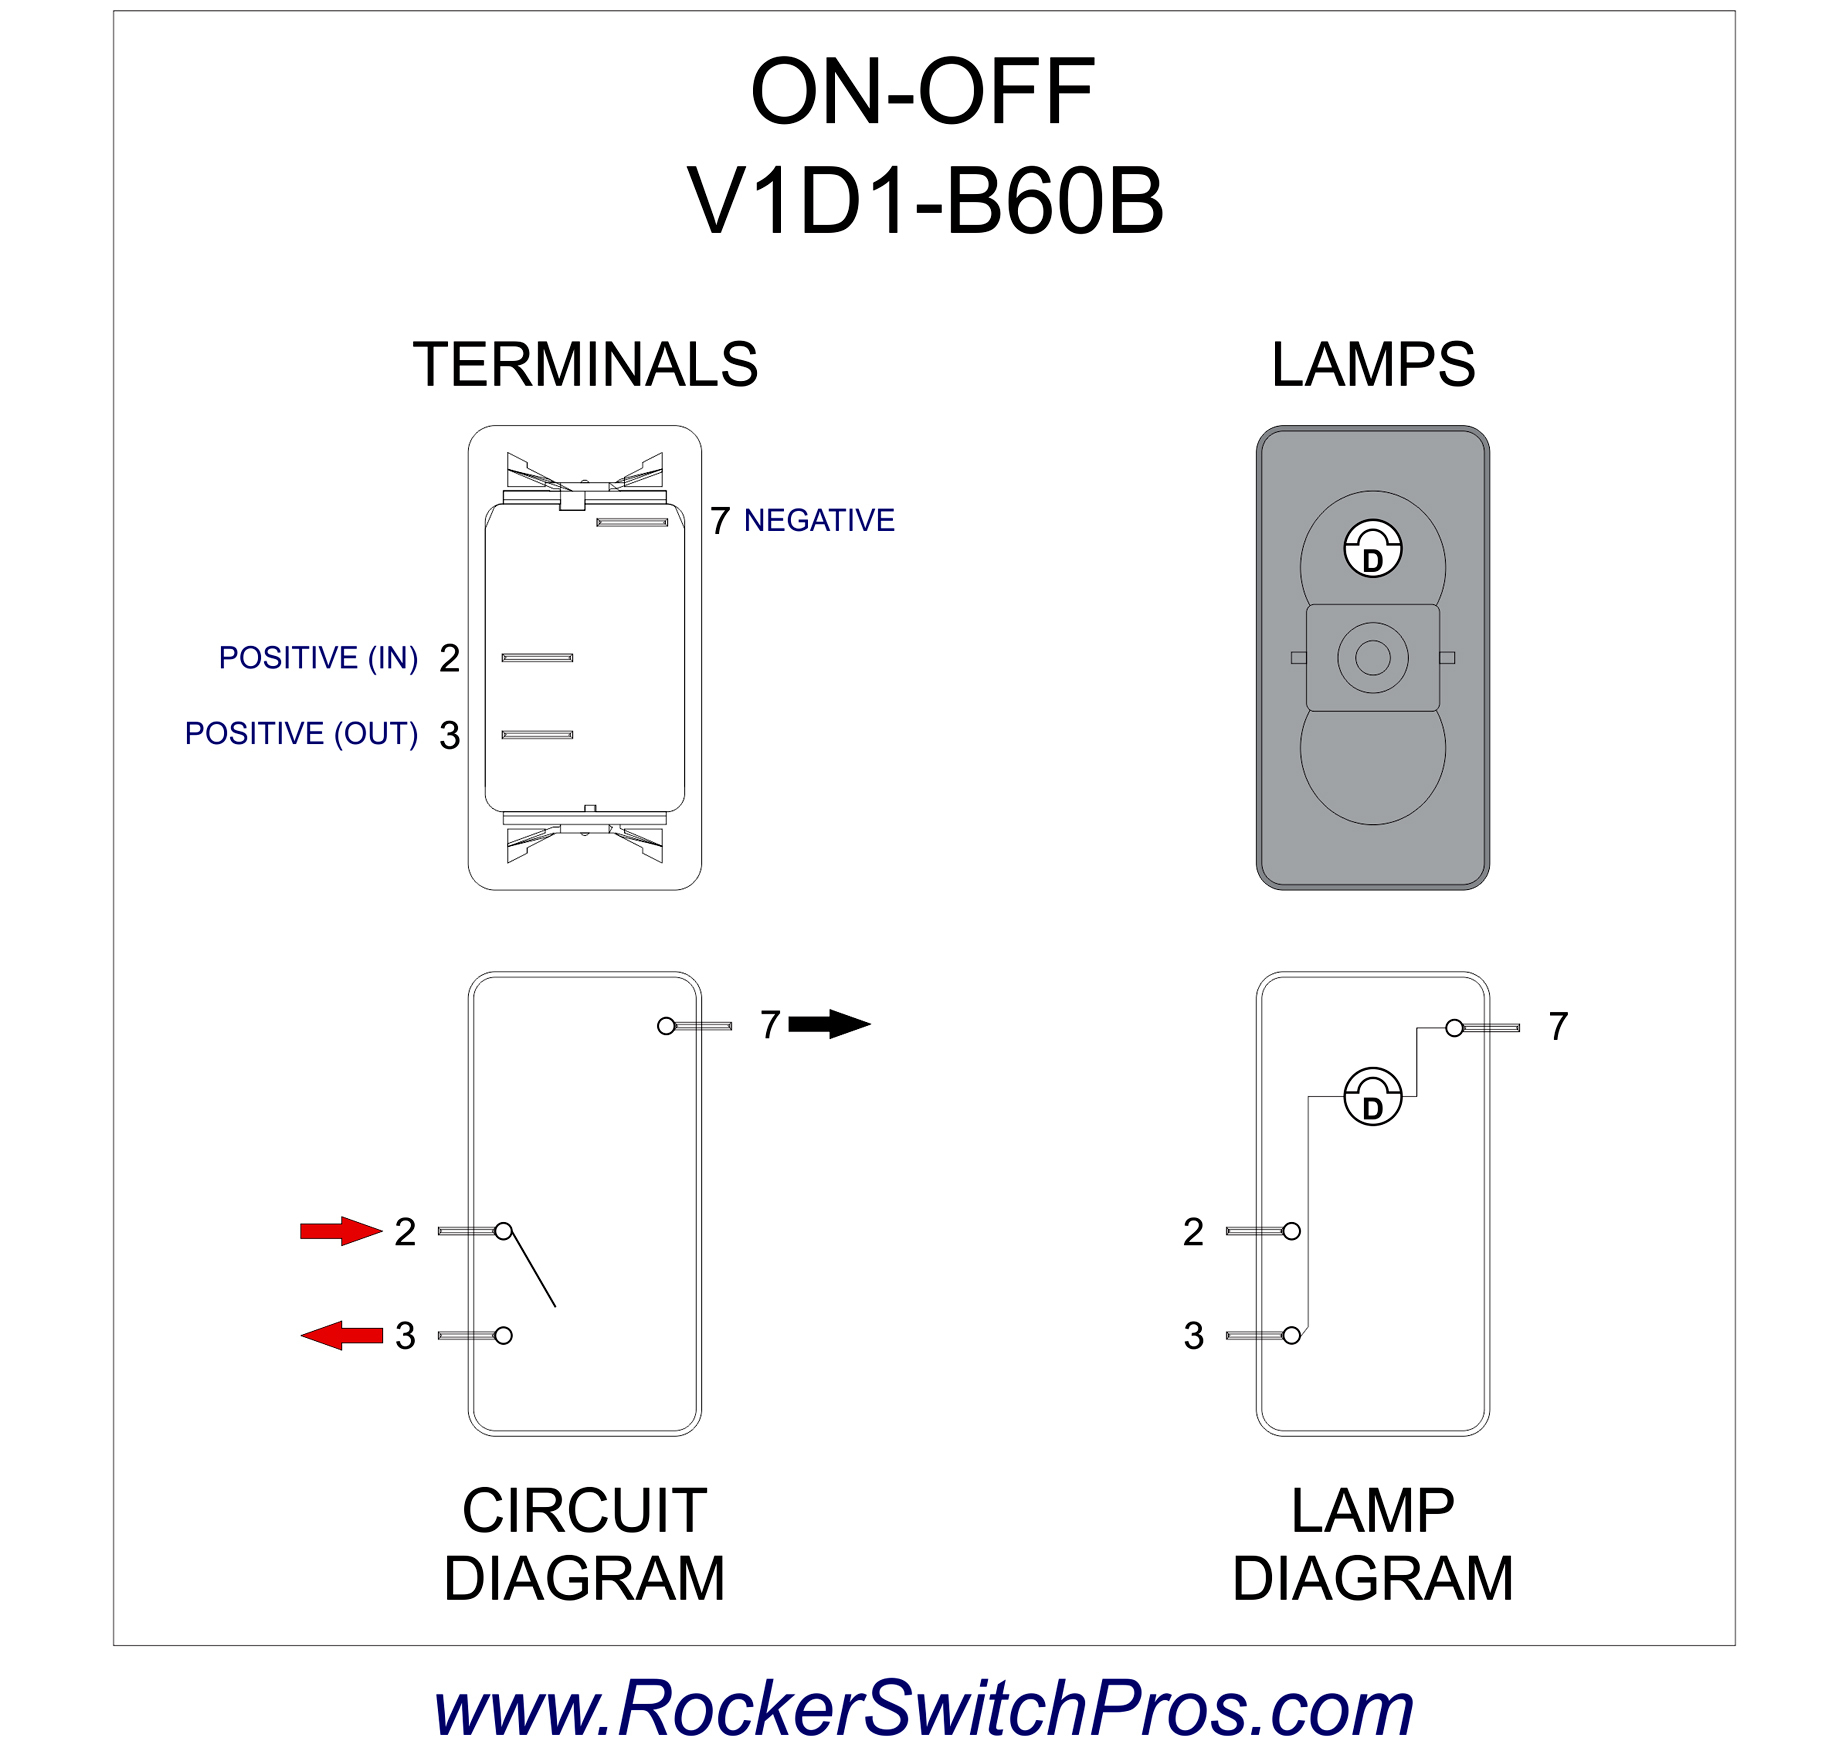 Carling Switch Wiring Diagram - Wiring Diagram Explained - Carlingswitch Wiring Diagram